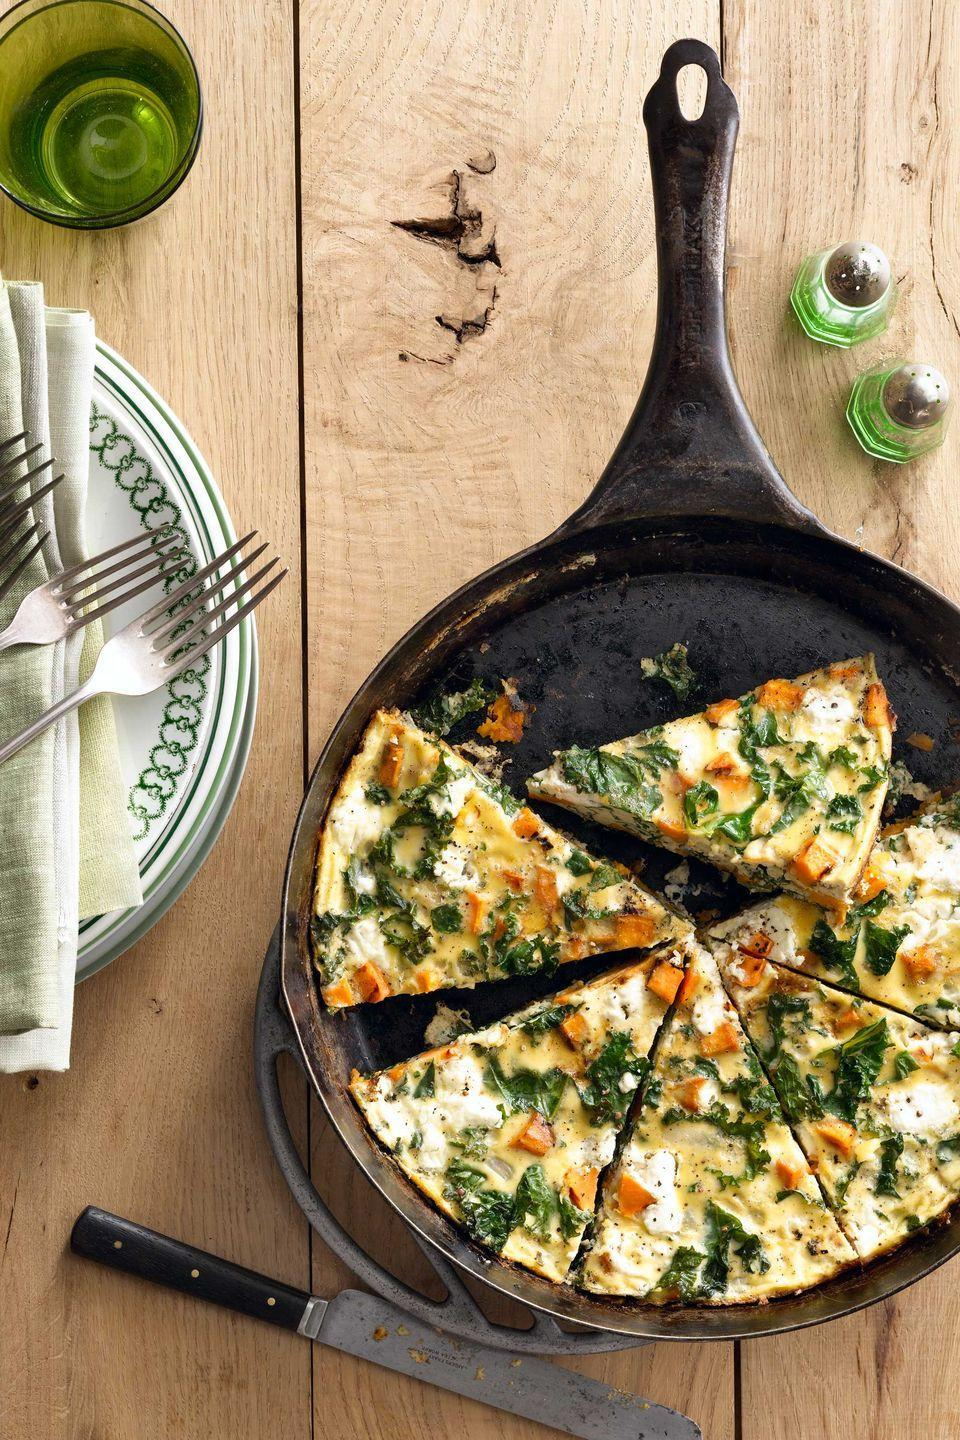 """<p>The whole family will gobble up this delicious and easy frittata that is perfect for breakfast, lunch, or dinner. </p><p><strong><a href=""""https://www.countryliving.com/food-drinks/recipes/a5502/sweet-potato-kale-frittata-recipe-clx0914/"""" rel=""""nofollow noopener"""" target=""""_blank"""" data-ylk=""""slk:Get the recipe"""" class=""""link rapid-noclick-resp"""">Get the recipe</a>.</strong></p><p><strong><a class=""""link rapid-noclick-resp"""" href=""""https://www.amazon.com/GreaterGoods-Skillet-Pre-Seasoned-handmade-Certified/dp/B07PP9TPRZ/?tag=syn-yahoo-20&ascsubtag=%5Bartid%7C10050.g.877%5Bsrc%7Cyahoo-us"""" rel=""""nofollow noopener"""" target=""""_blank"""" data-ylk=""""slk:SHOP CAST IRONS SKILLETS"""">SHOP CAST IRONS SKILLETS</a><br></strong></p>"""